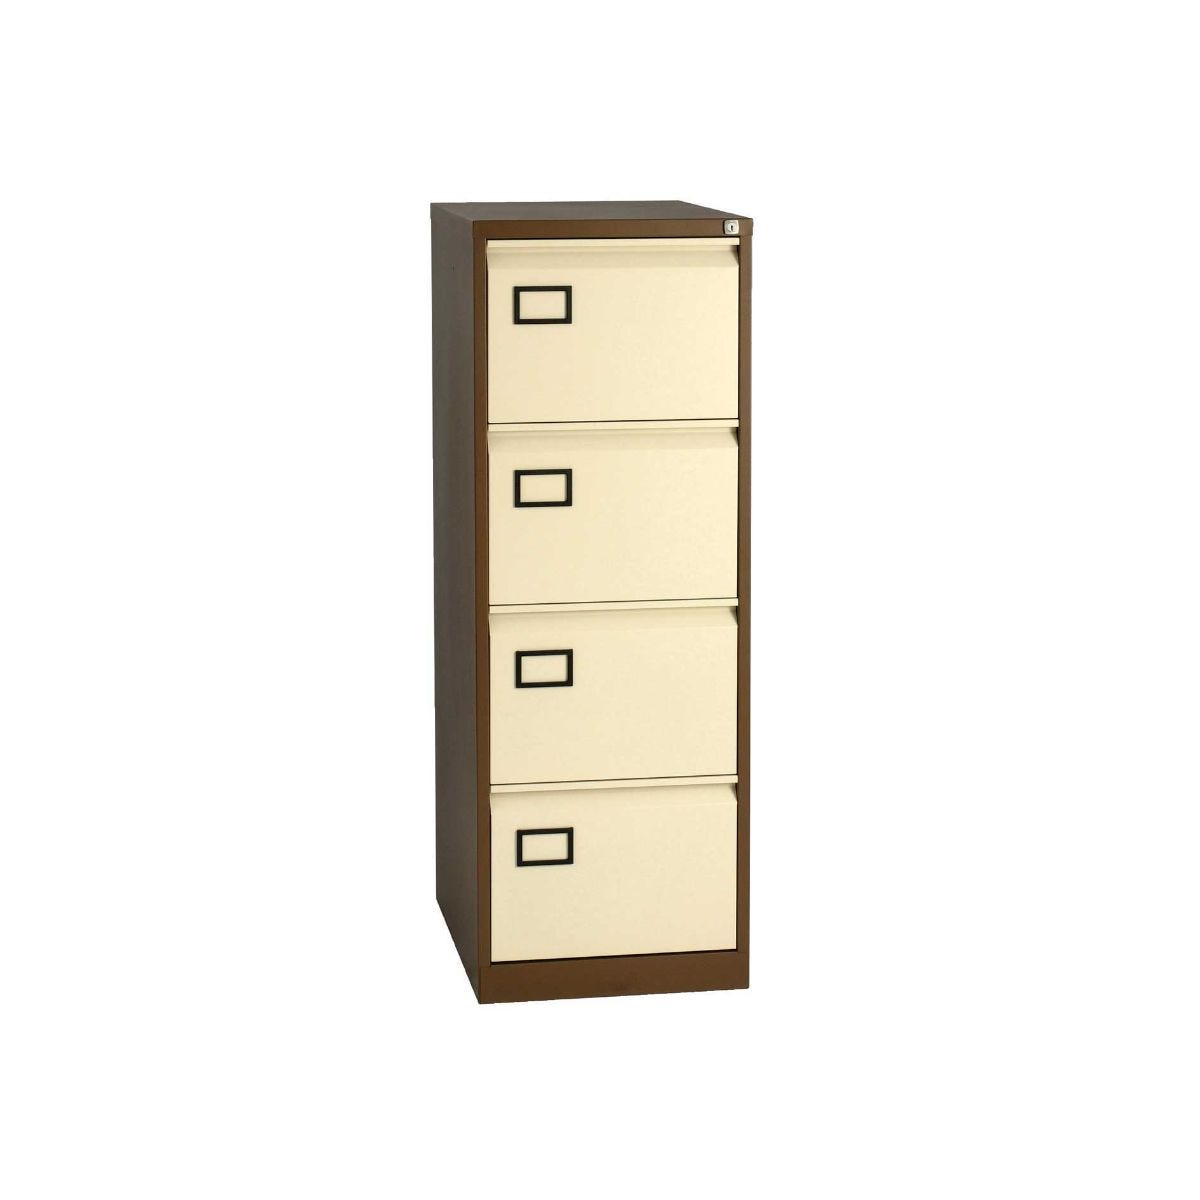 Bisley 4 Drawer Filing Cabinet Foolscap, Coffee  Cream